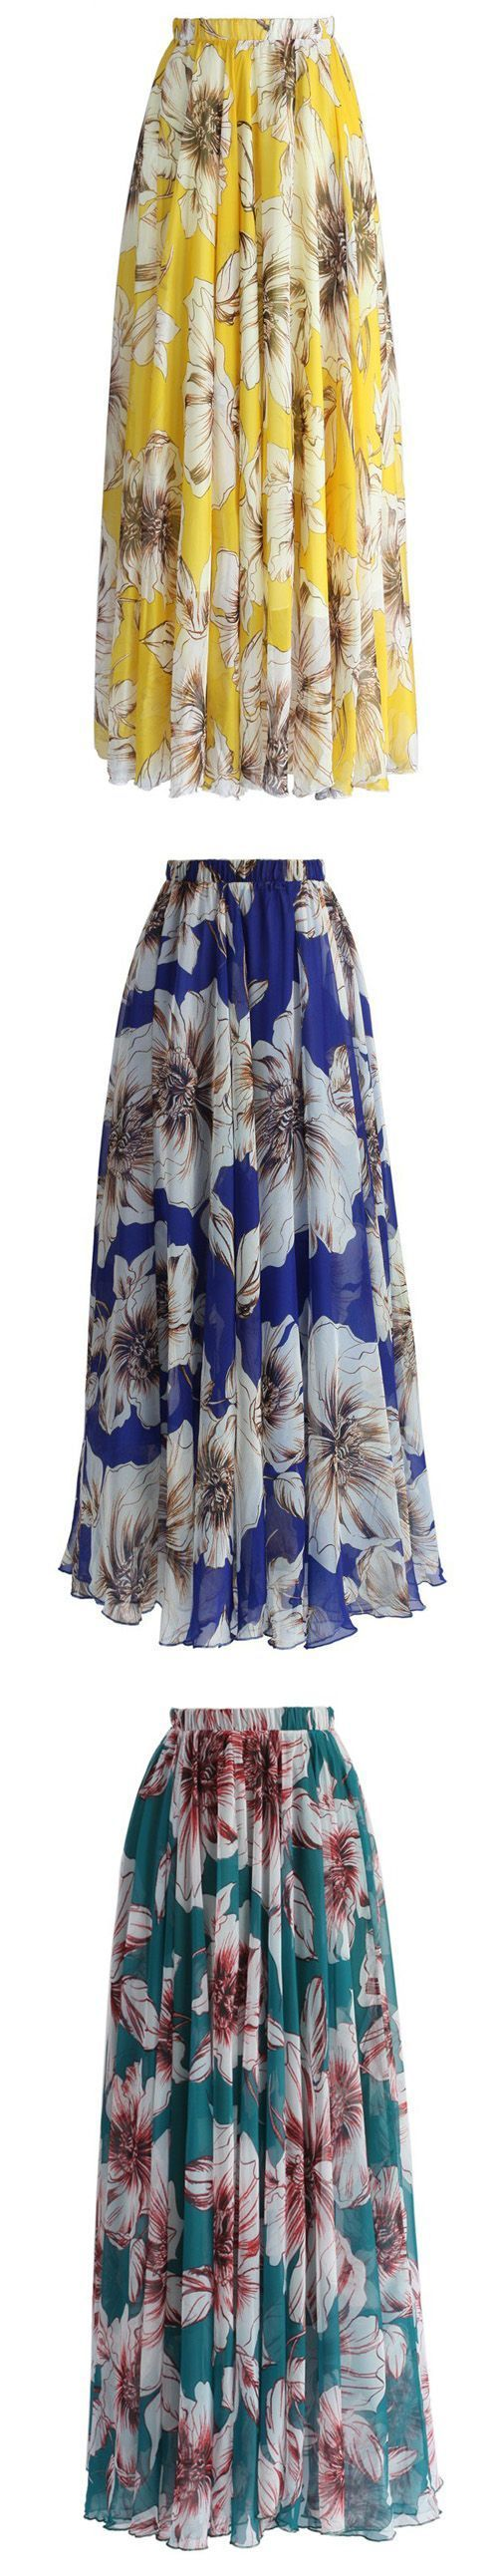 Marvel at the bold floral print of this gossamer maxi frock. Swirl in it with a trendy off-shoulder top or cami, your summer vacation is in countdown!